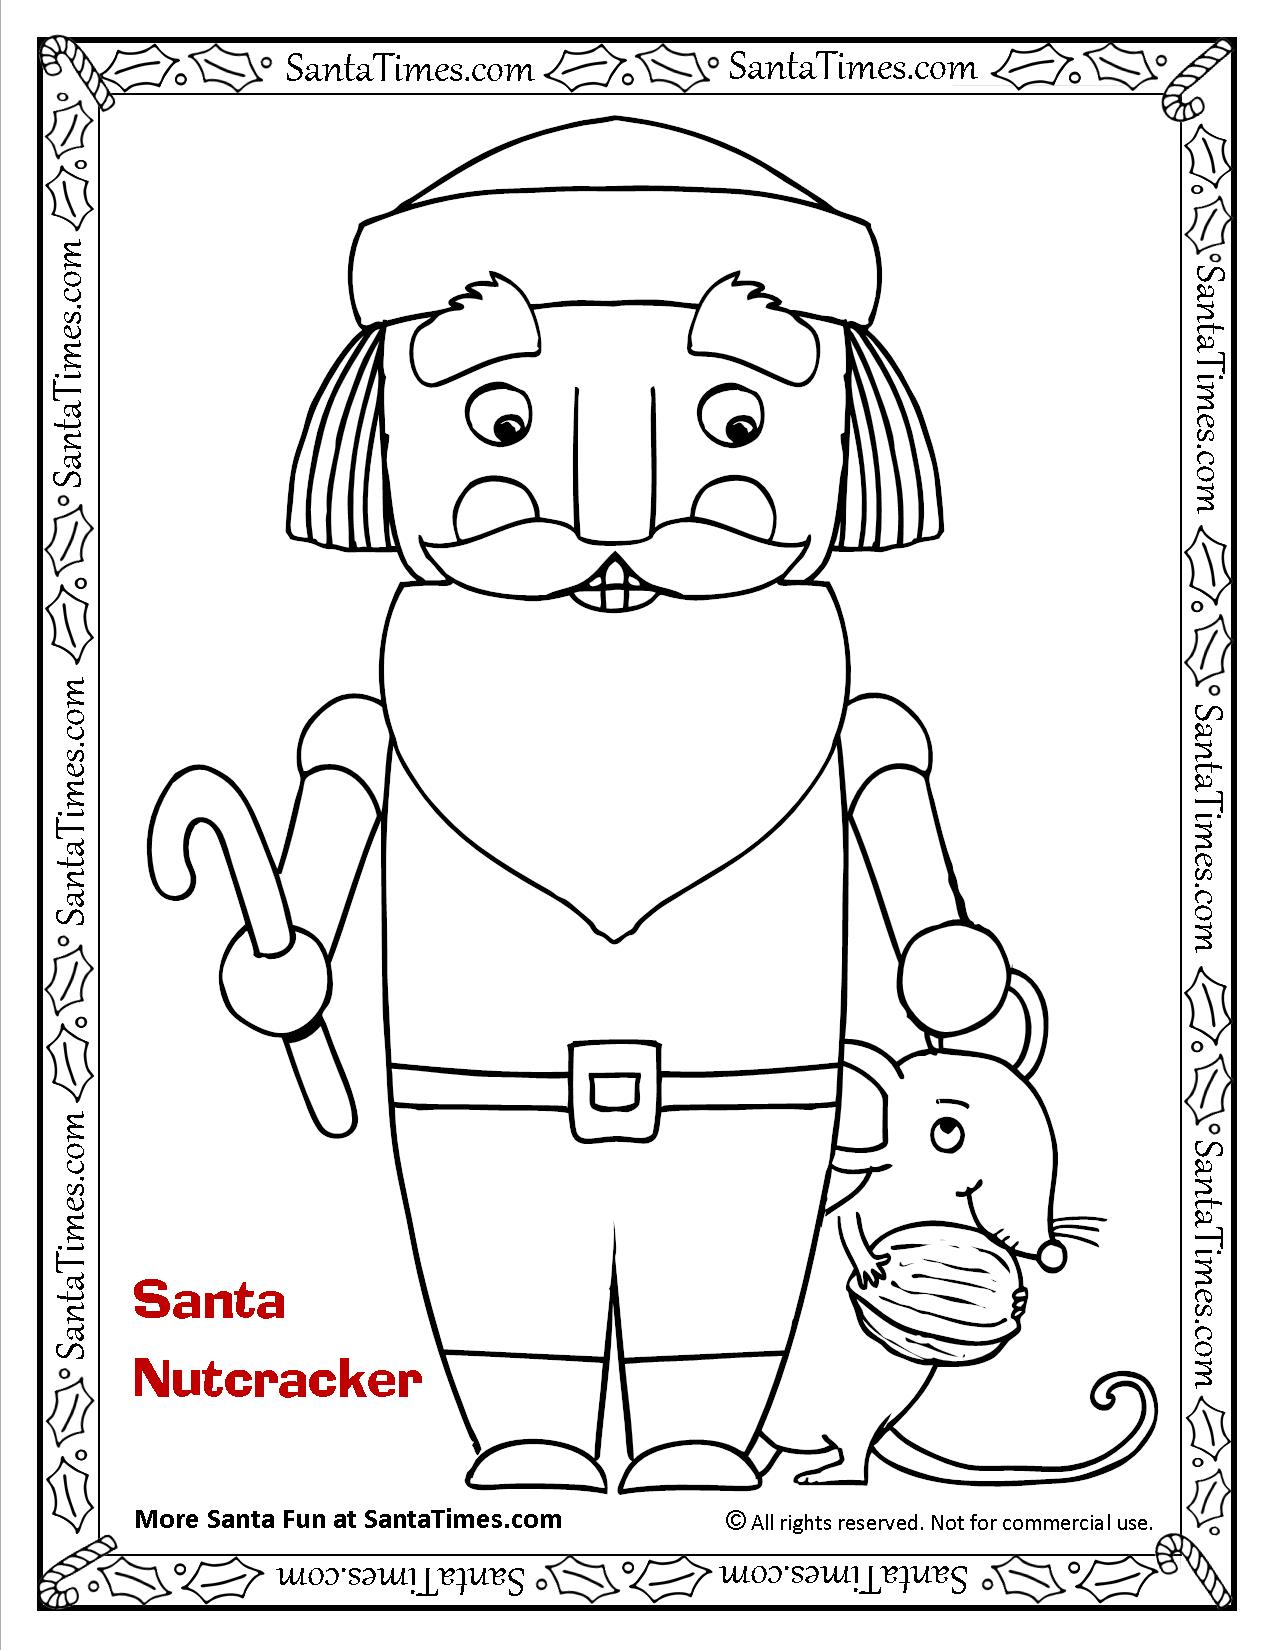 Nutcracker Santa Printable Coloring Page